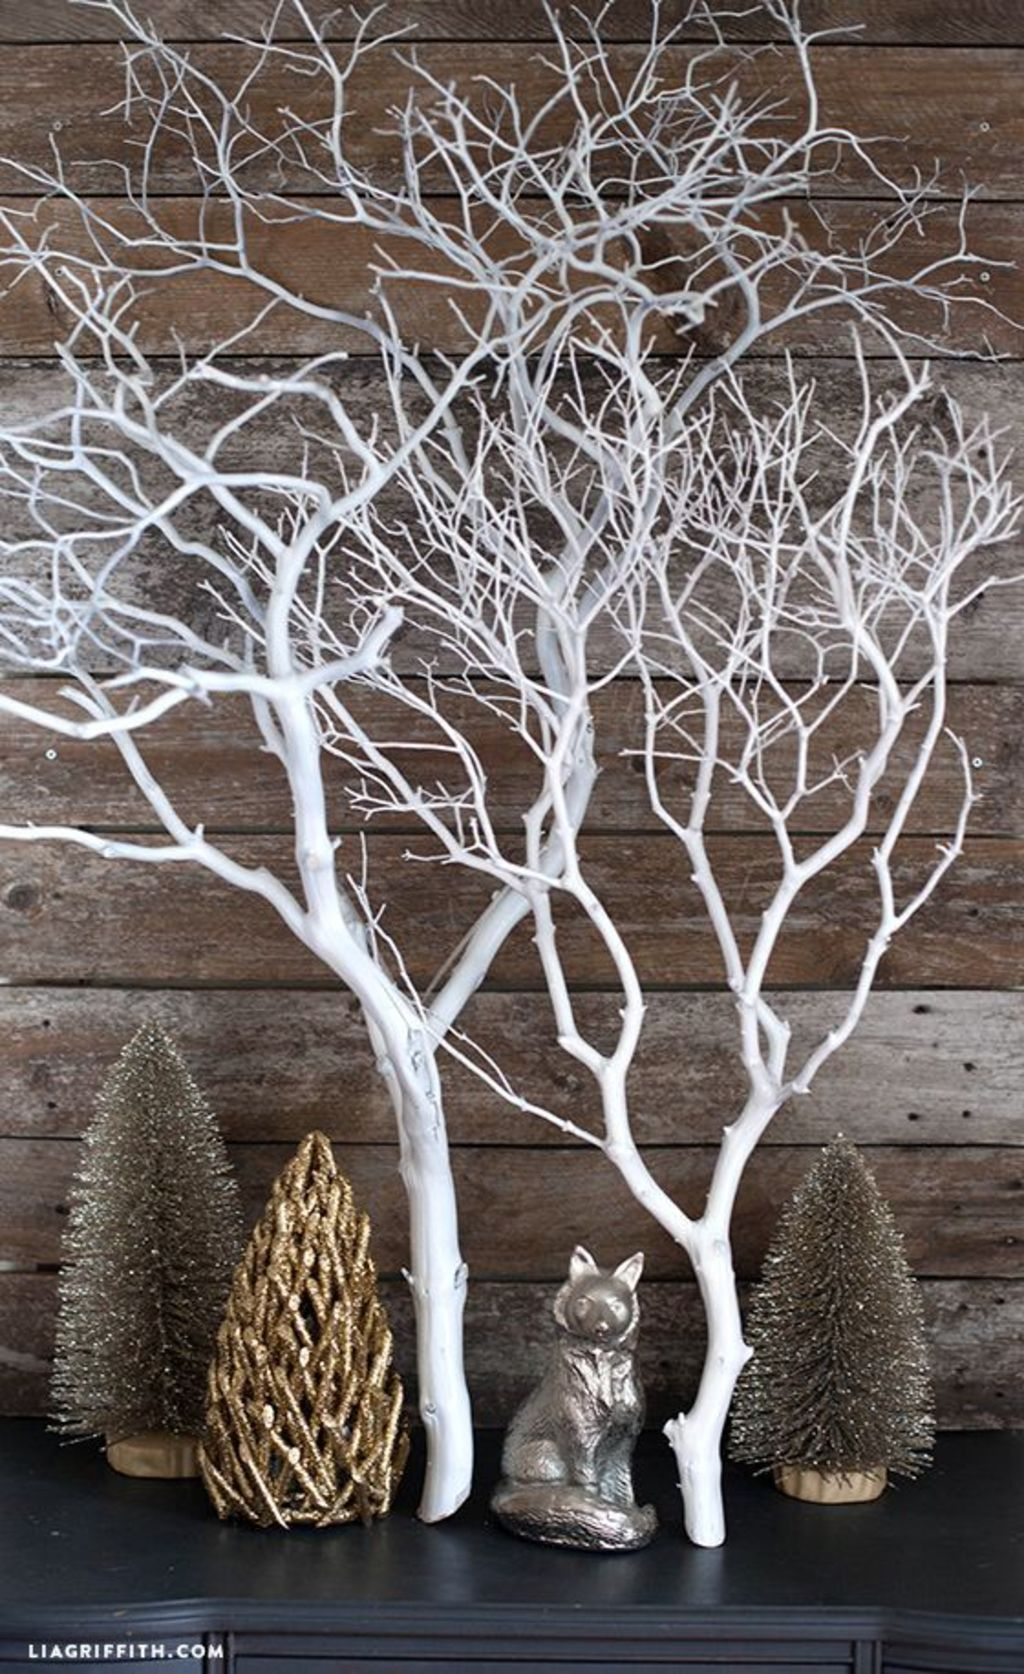 Simple Beautiful Diy Home Decor Ideas Out Off Tree Branches Part 20 Elonahome Com Tree Branch Wall Decor Christmas Tree With Coloured Lights Christmas Decor Diy